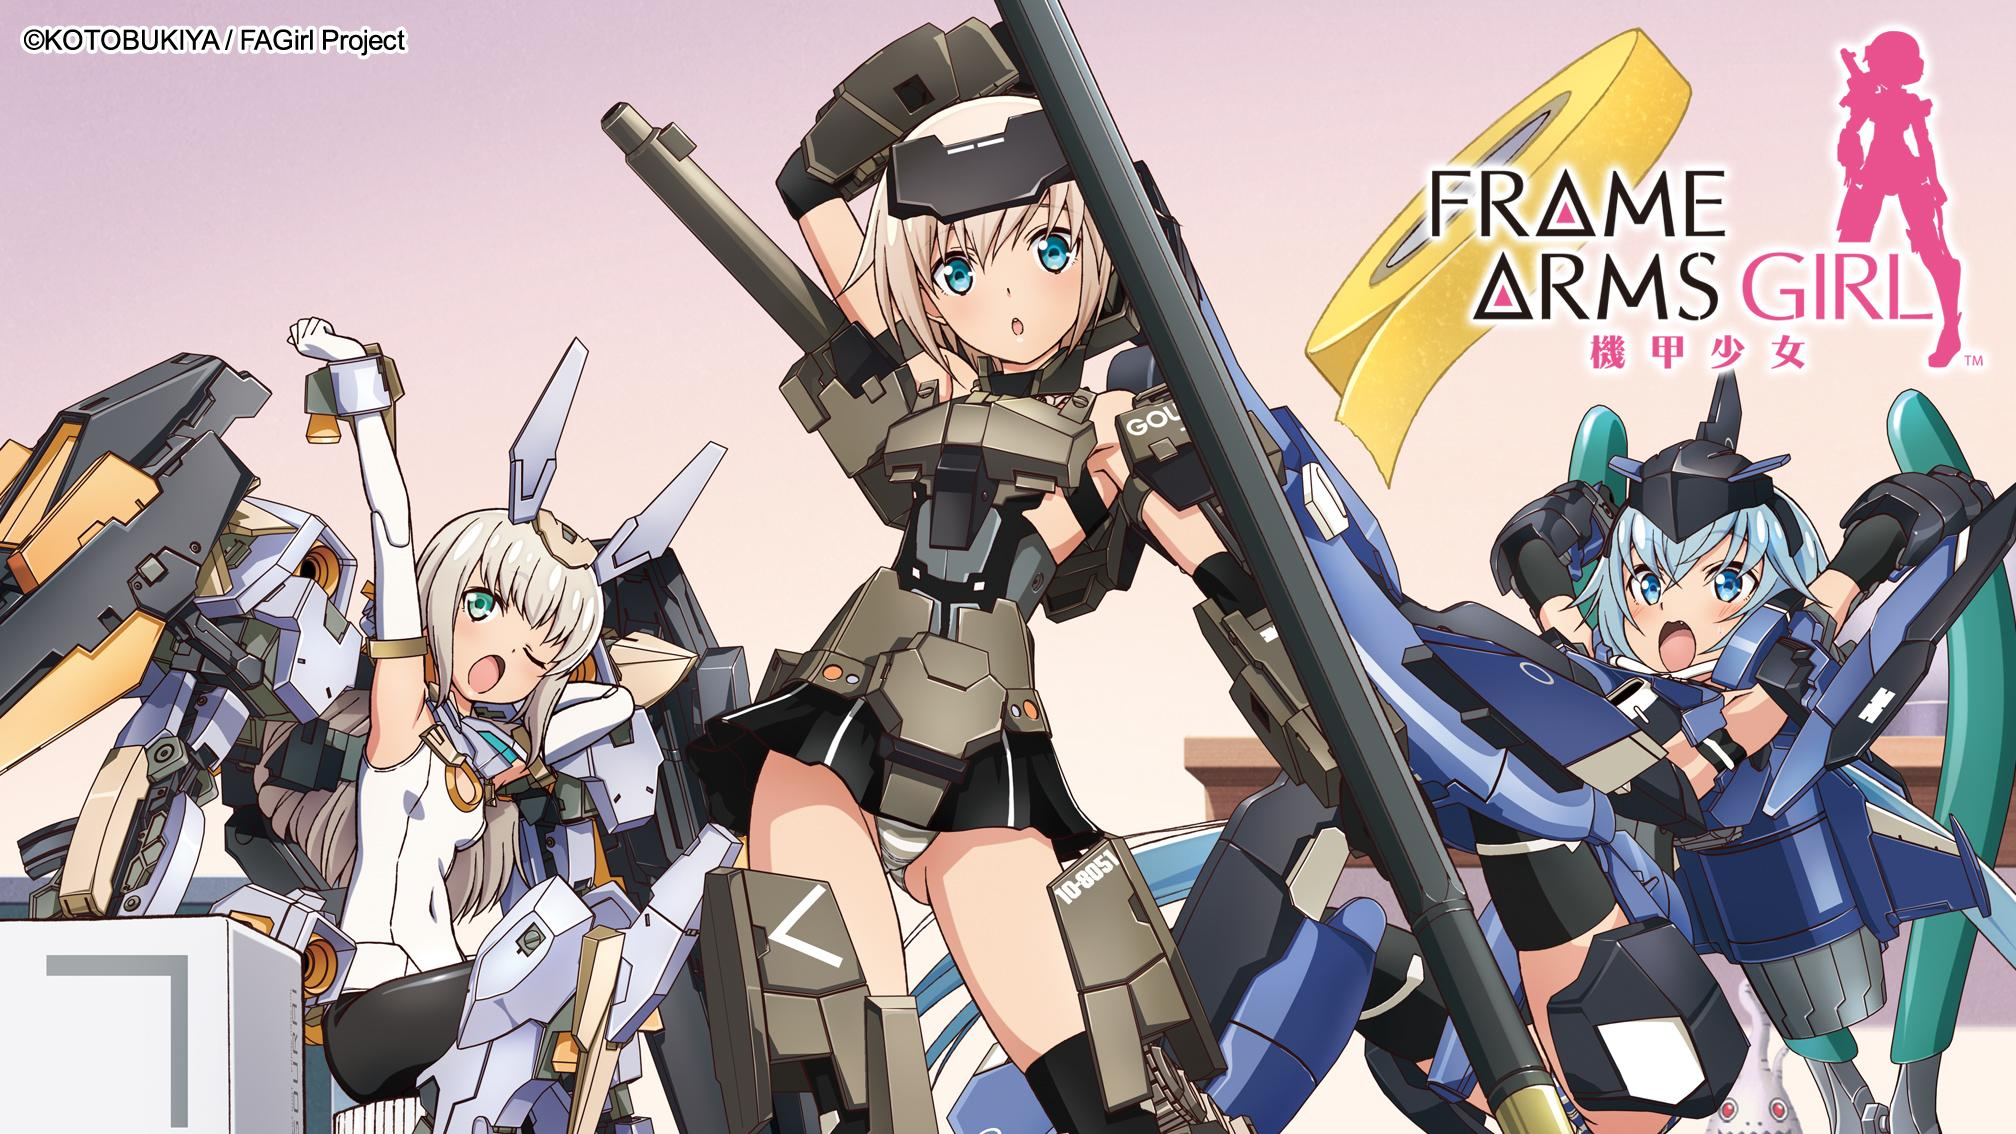 機甲少女Frame Arms Girl劇照 1